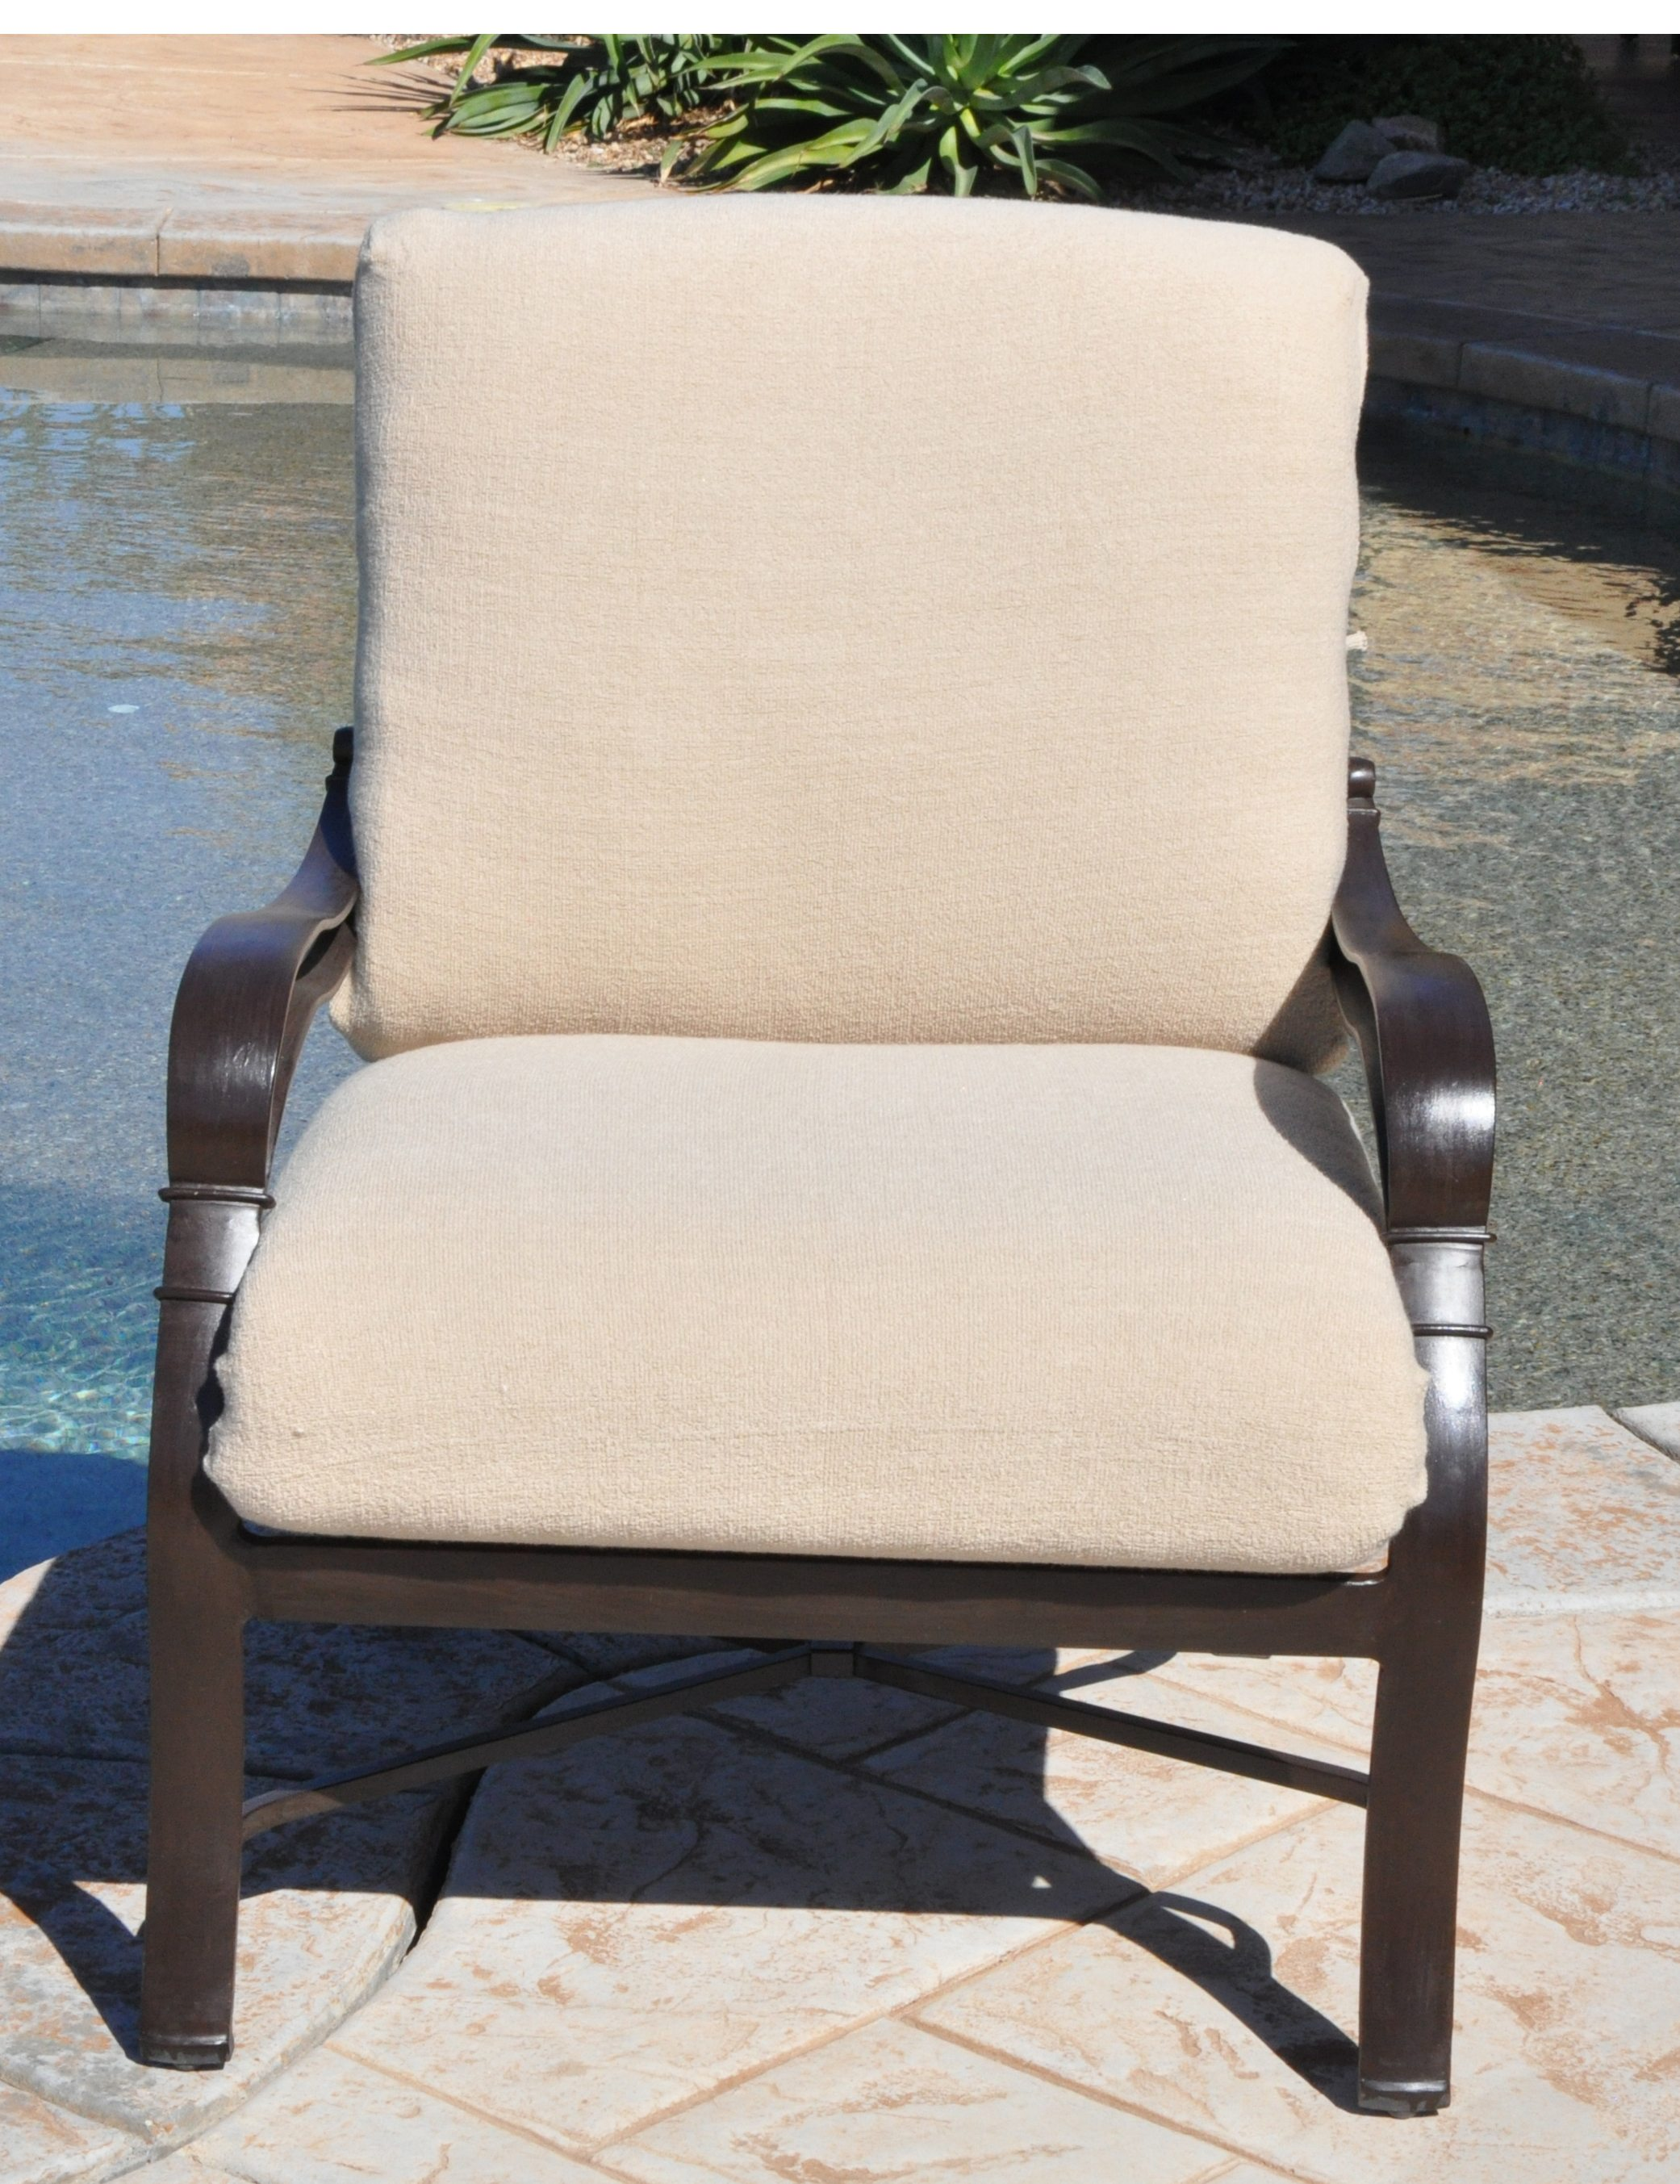 Elegant Outdoor Deep Seat Cushion Slipcovers (2 Piece)